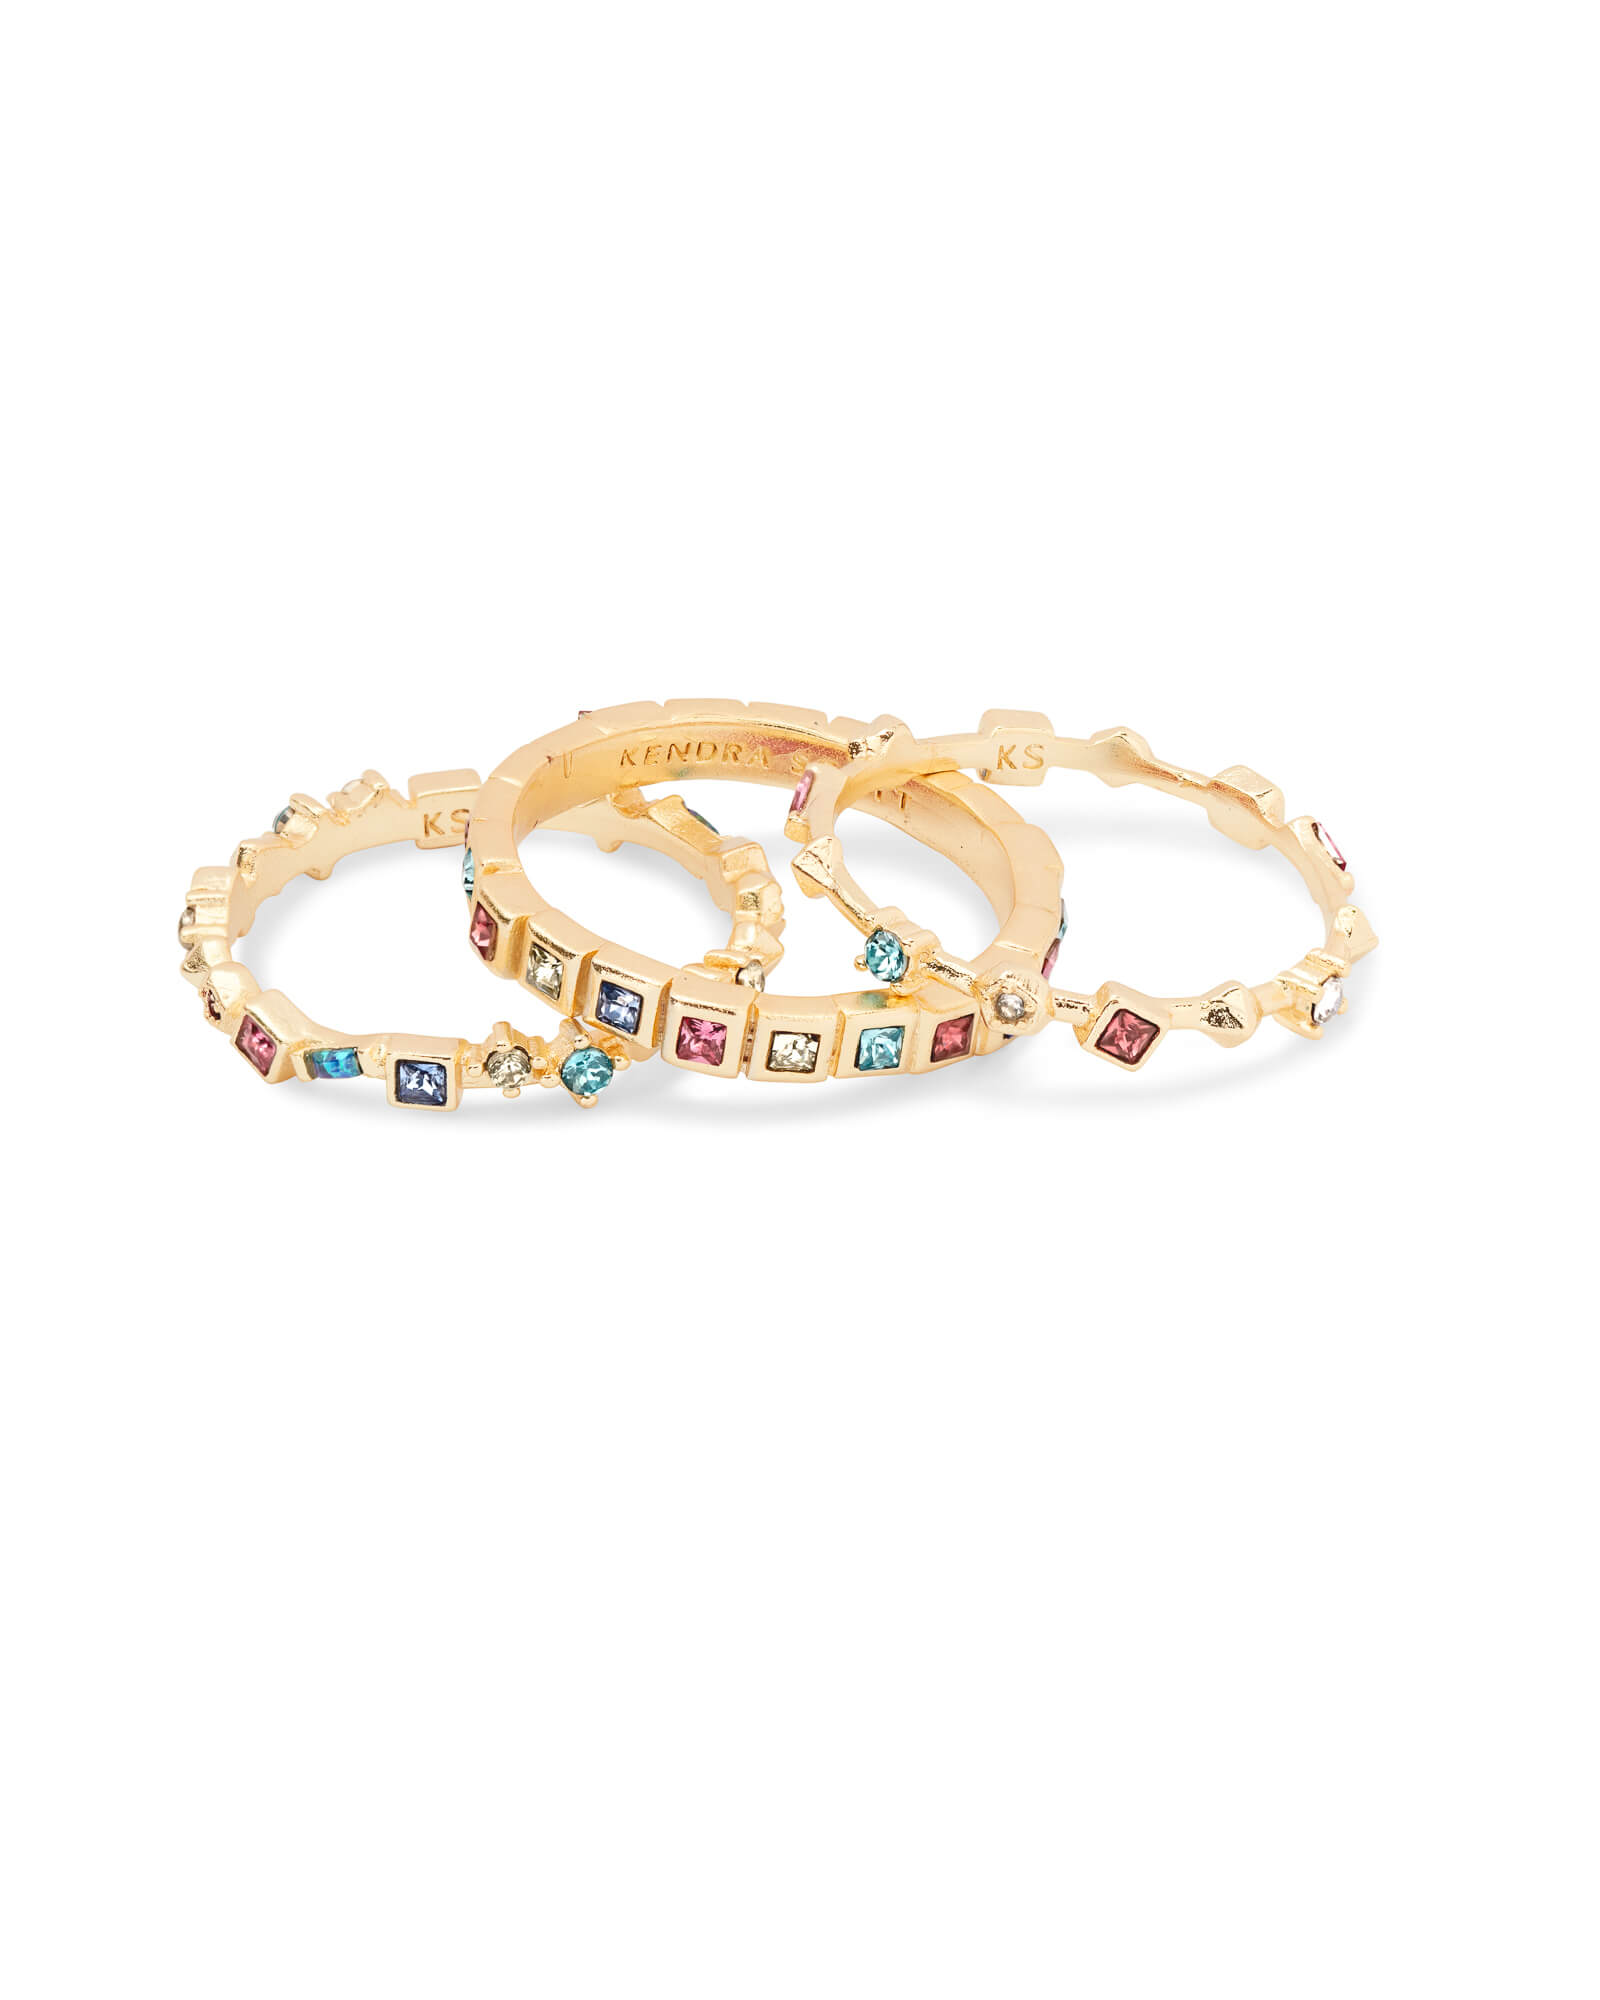 Karis Gold Stackable Ring Set in Jewel Tone Mix